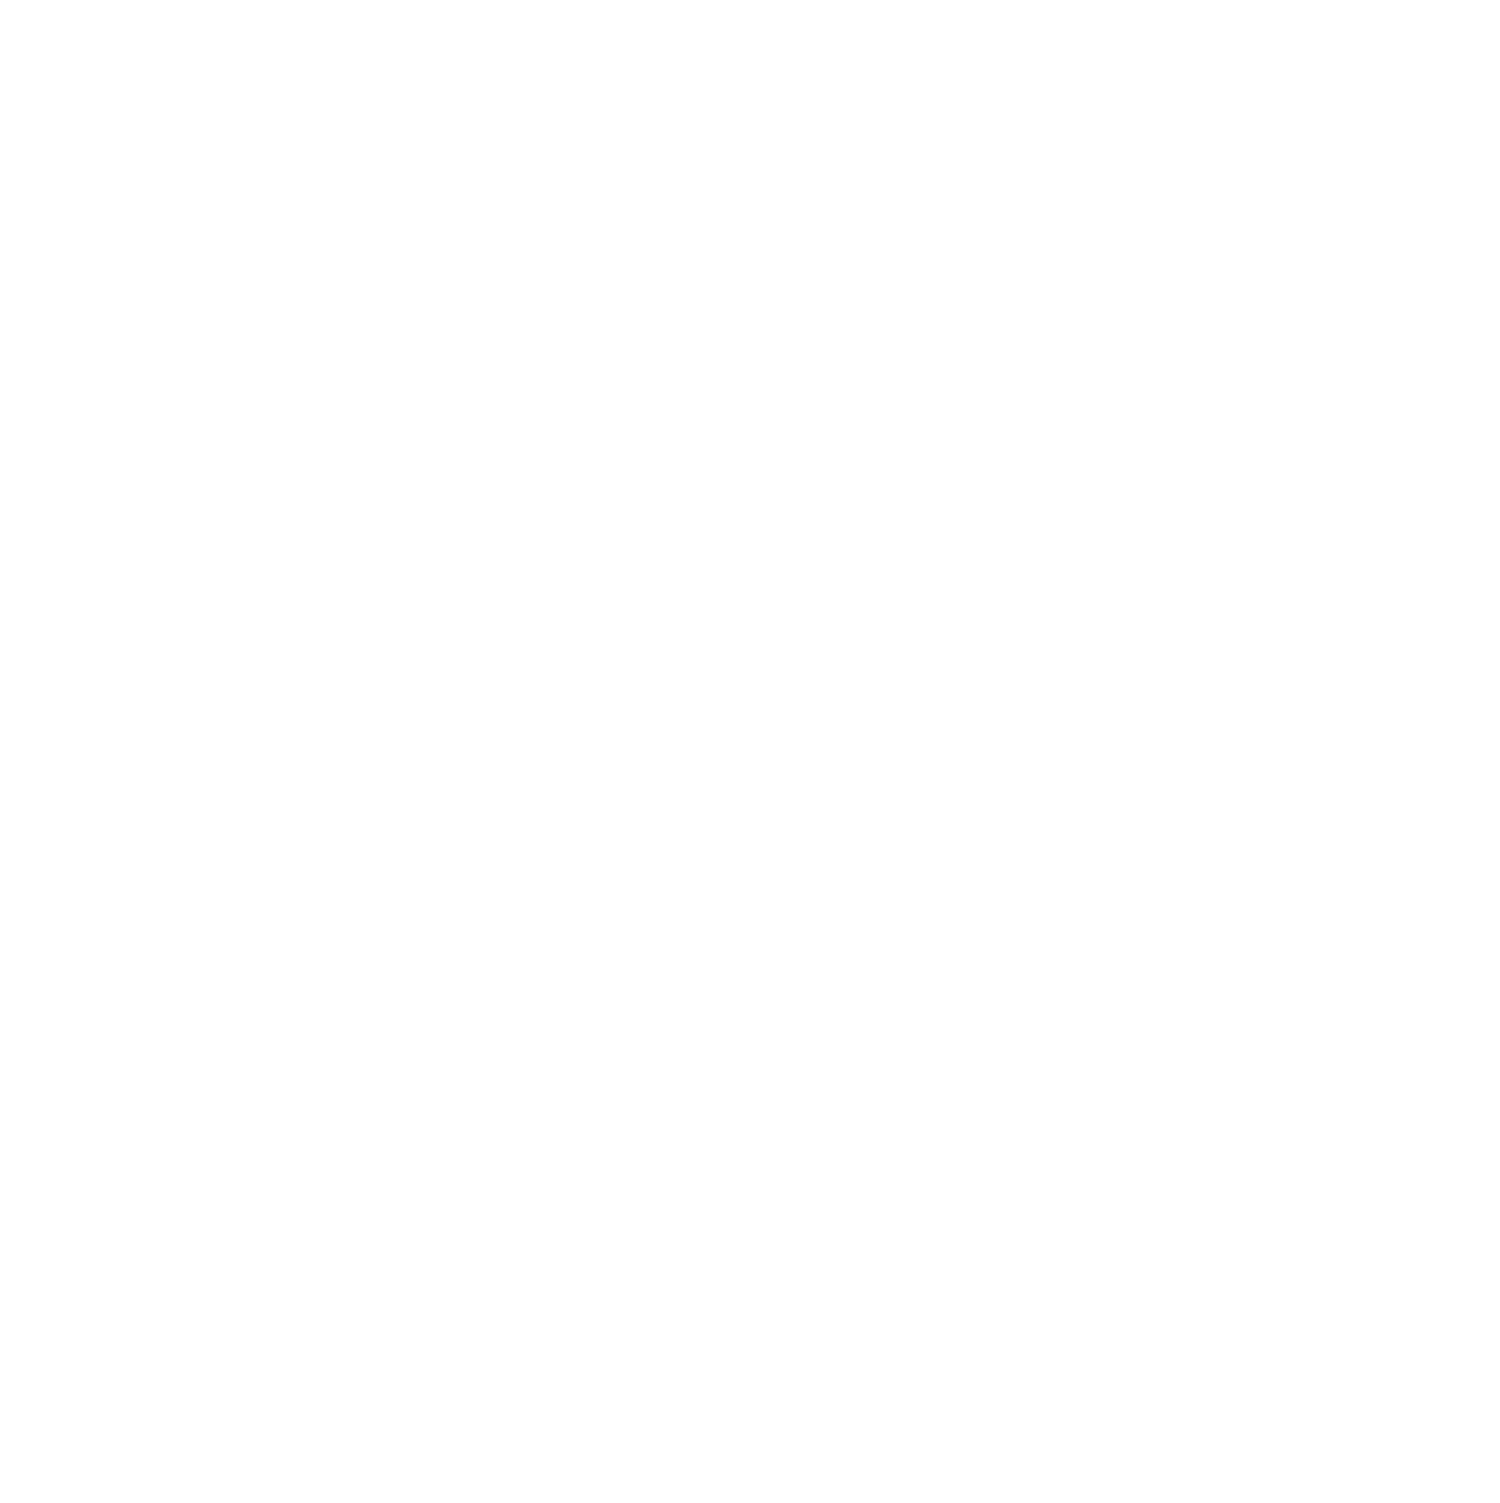 Filmscape Chicago